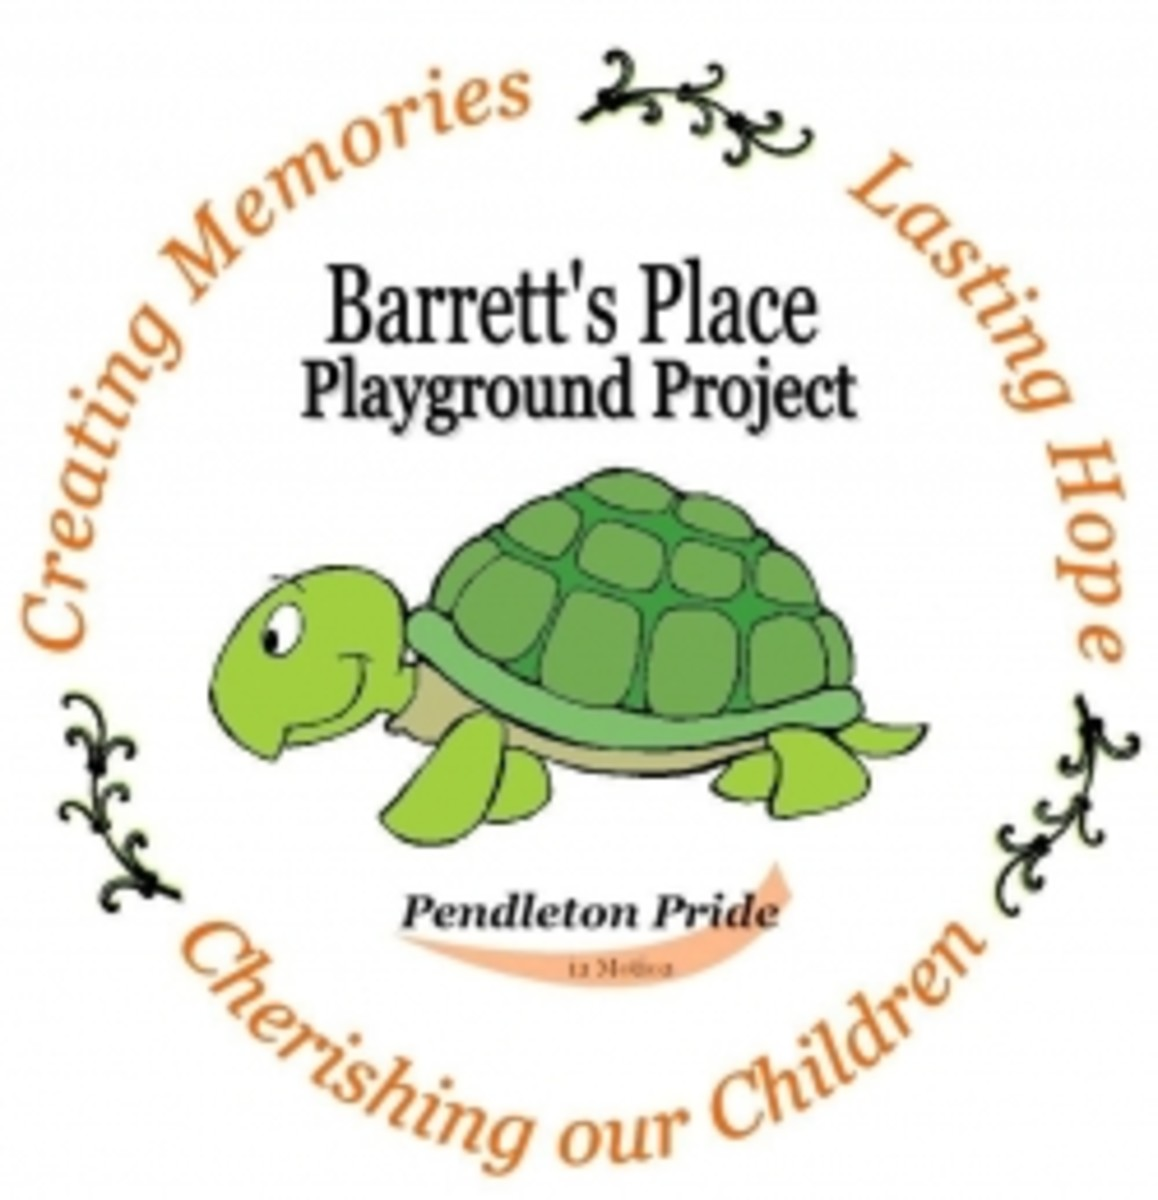 Official Logo used during the fundraising and building of Barrett's Place